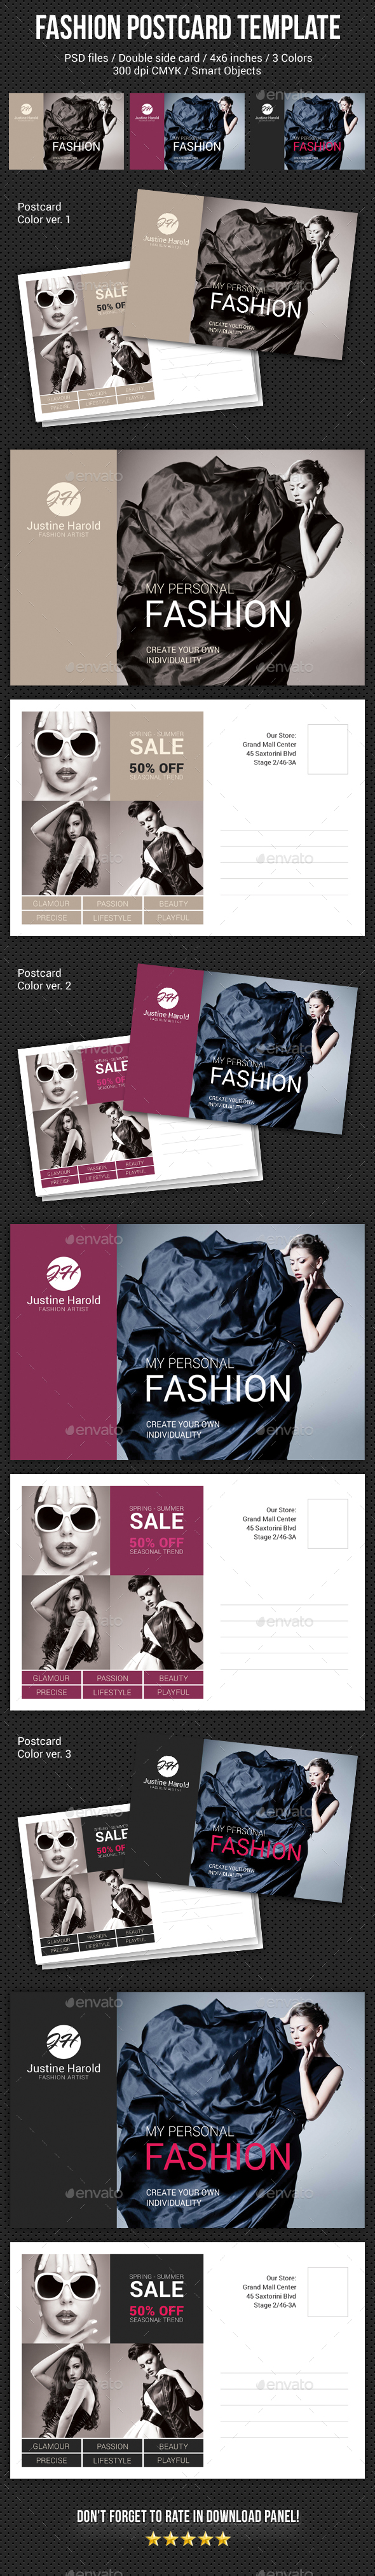 Fashion Postcard Template 4 - Cards & Invites Print Templates